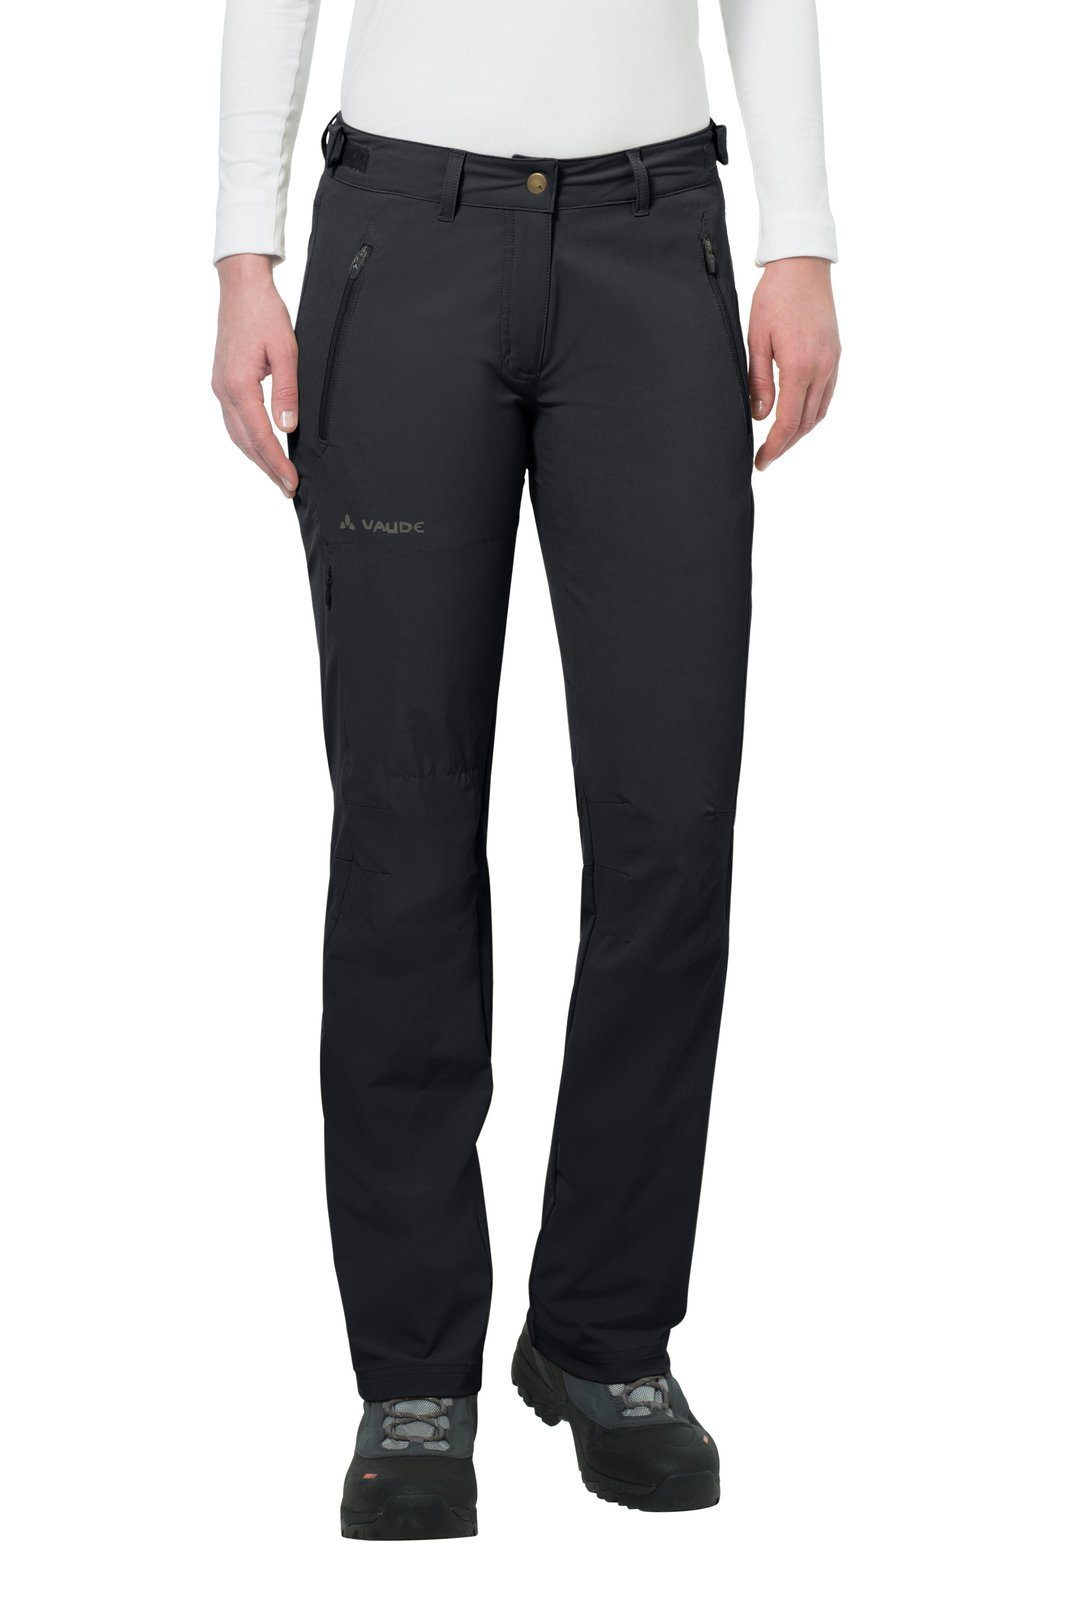 Vaude - Women's Farley Stretch Pants II - made from environmentally-friendly bluesign® certified materials - Weekendbee - sustainable sportswear